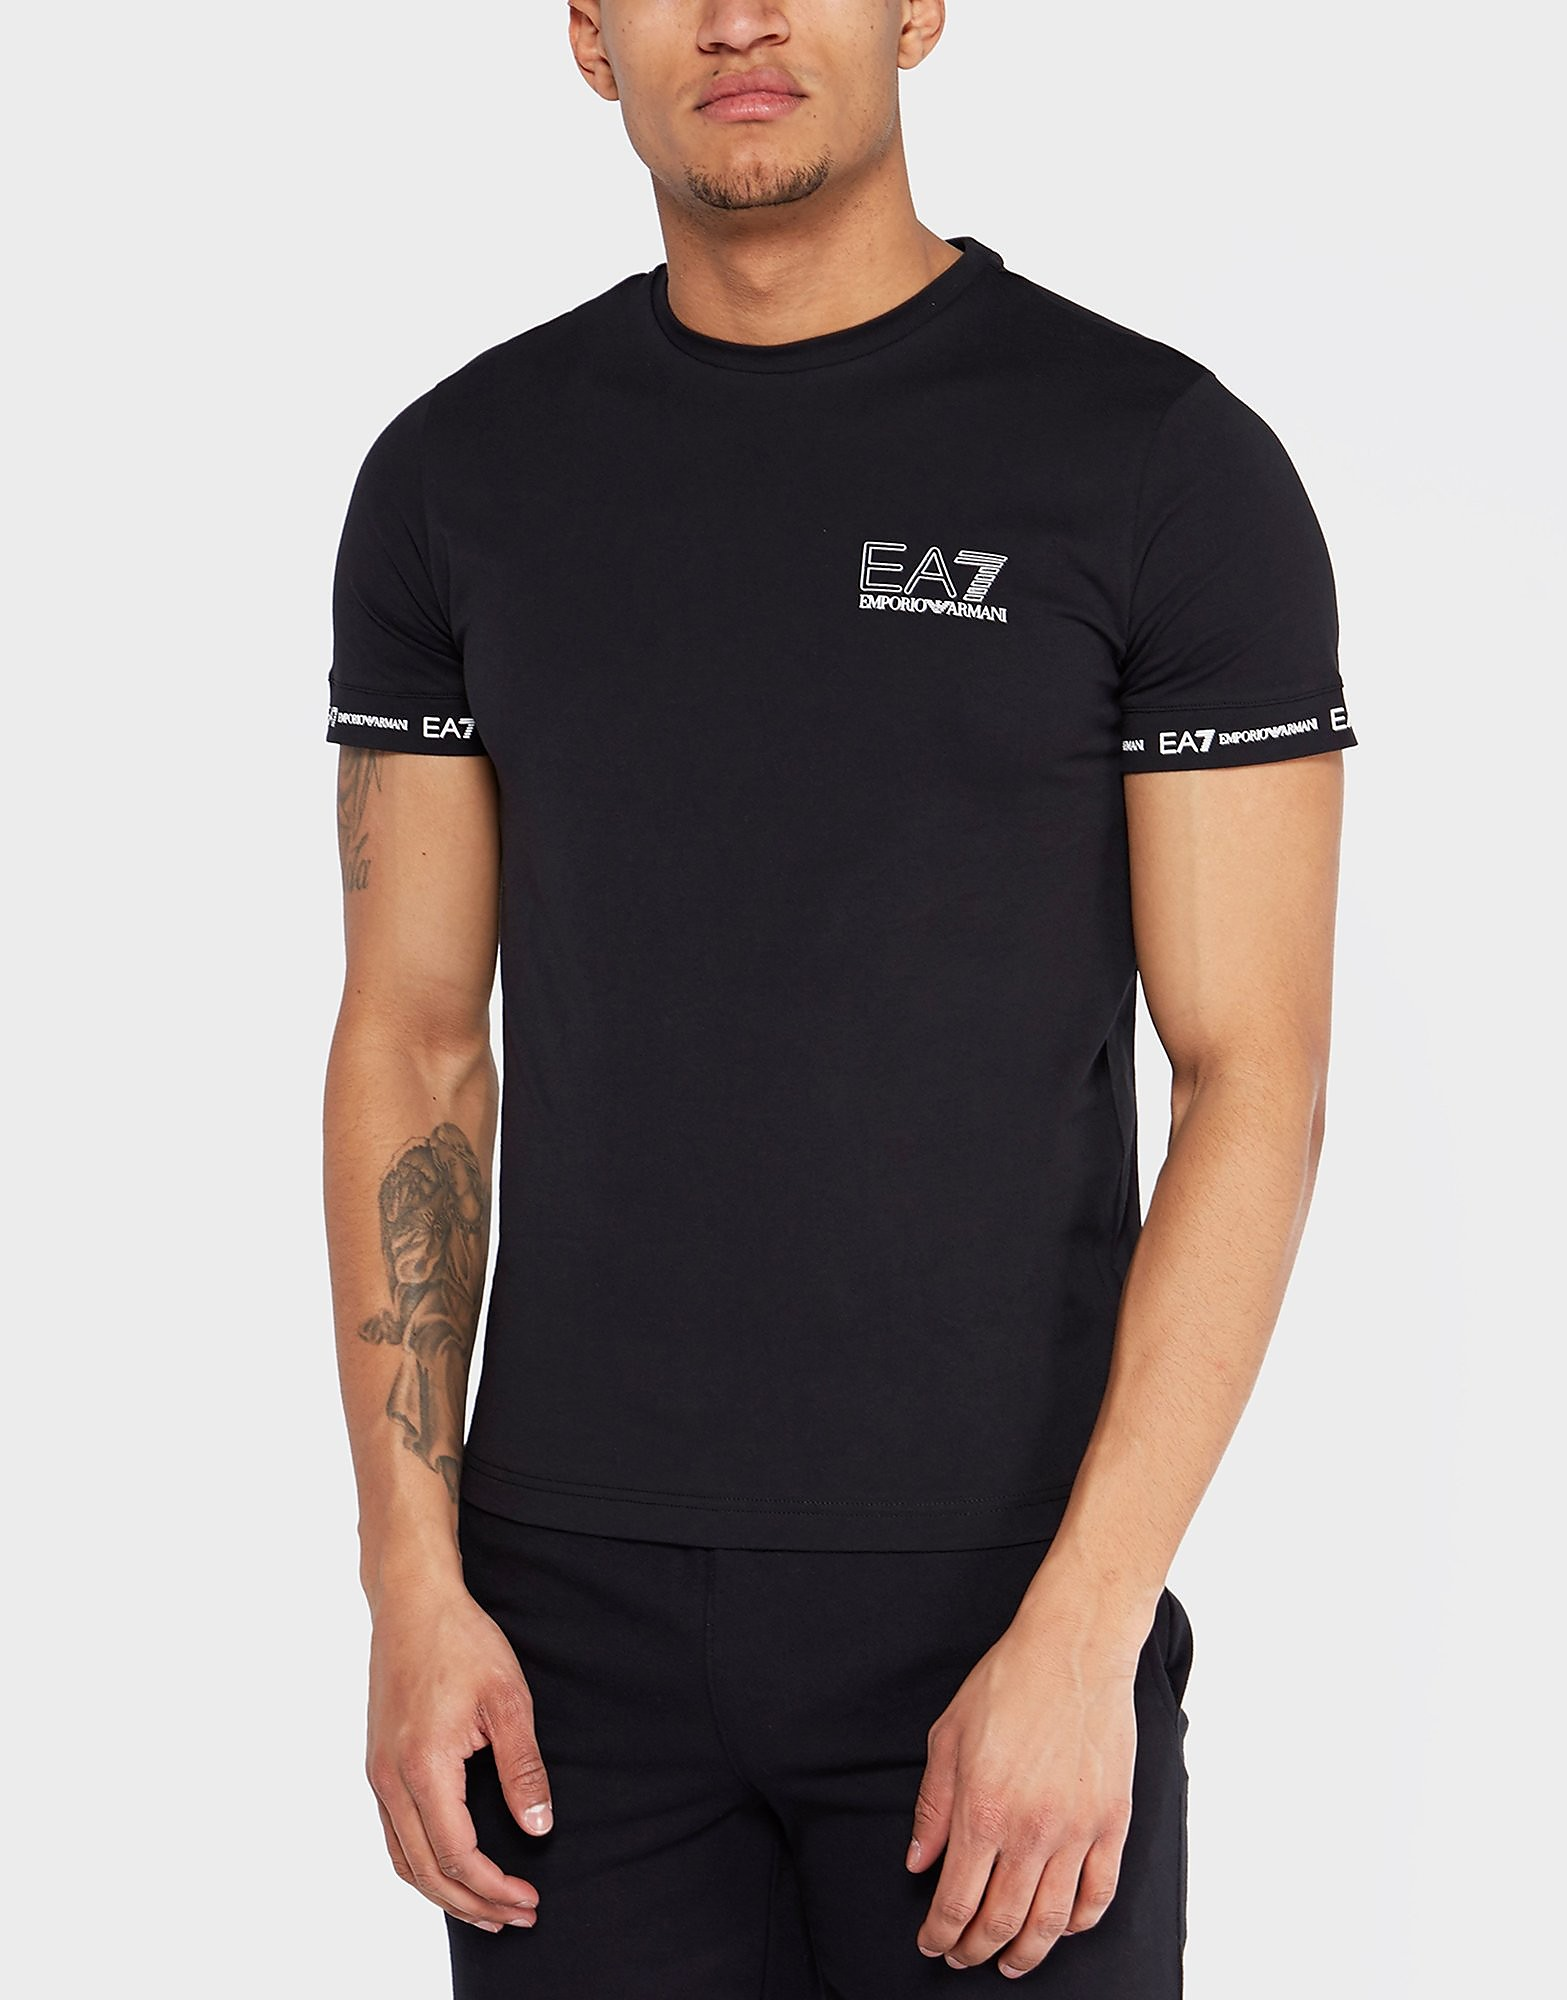 Emporio Armani EA7 Sleeve Branded Short Sleeve T-Shirt - Exclusive